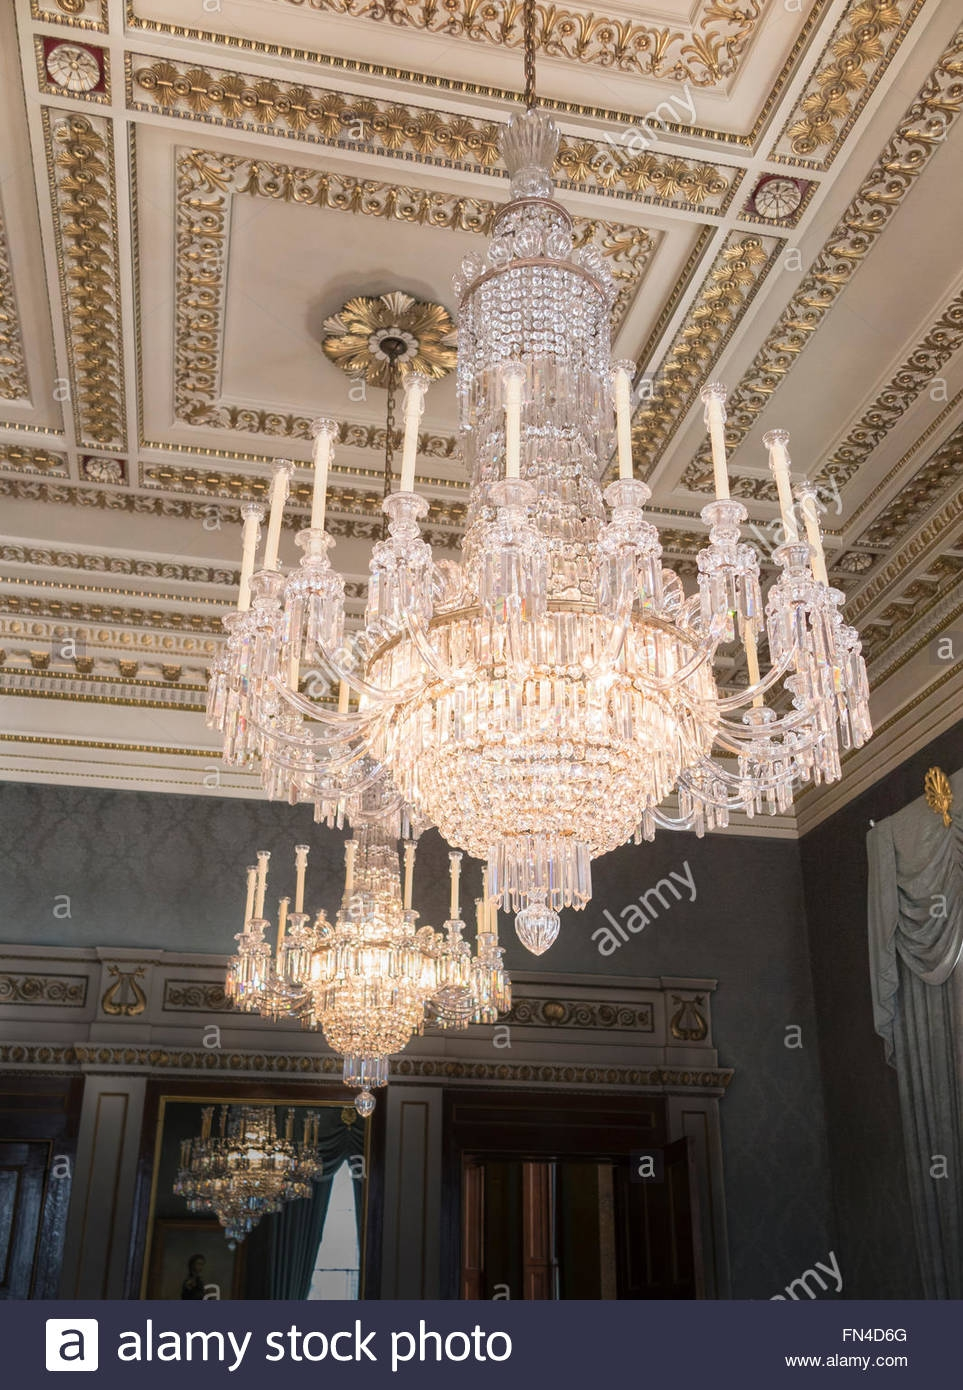 Lighting Chandeliers Ornate Room Stock Photos Lighting Regarding Ornate Chandeliers (Image 10 of 15)